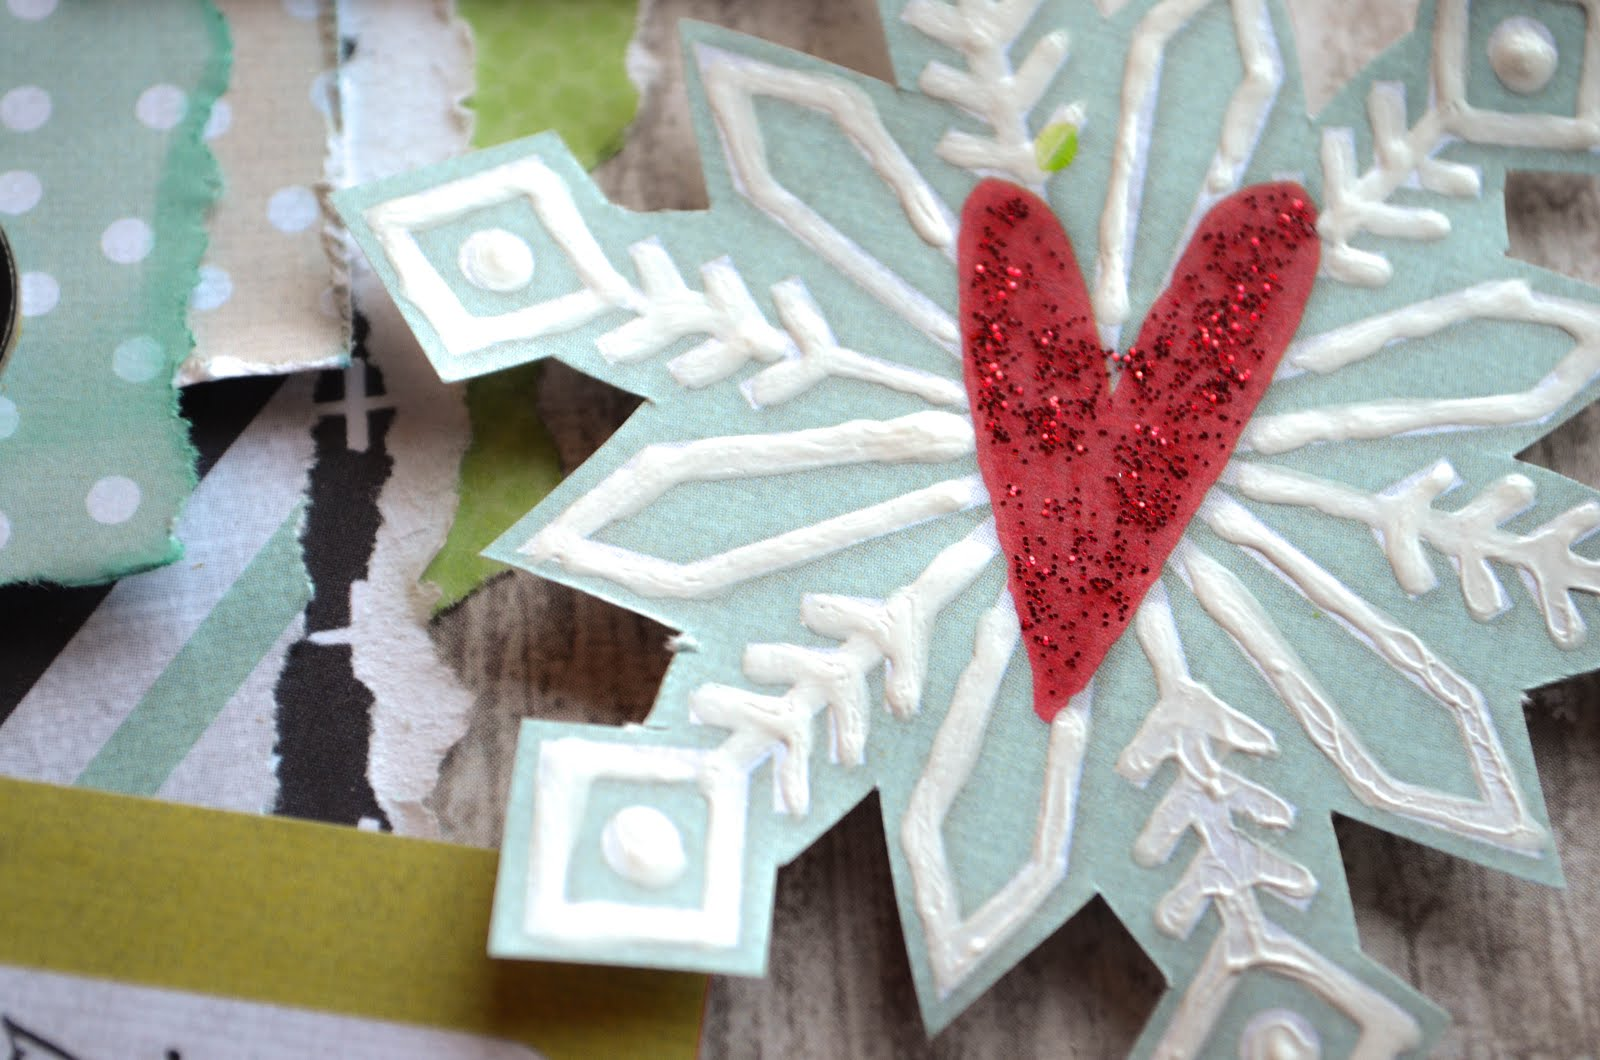 Christmas winter scrapbook page layout in light blue, green, gray, and black with holiday and snowflake elements